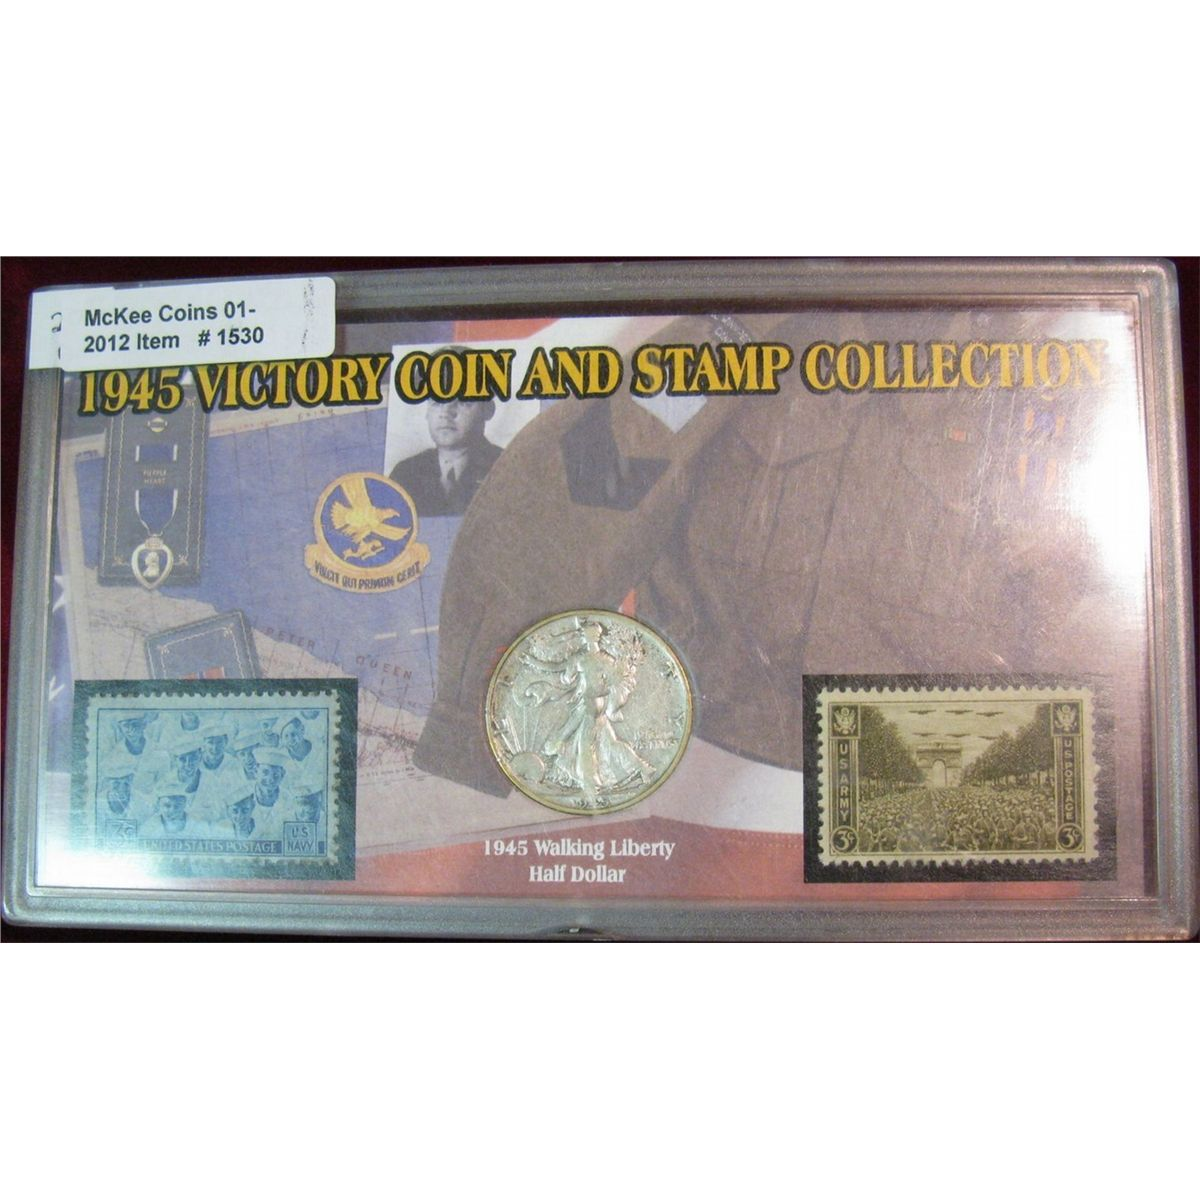 1945 victory coin and stamp collection